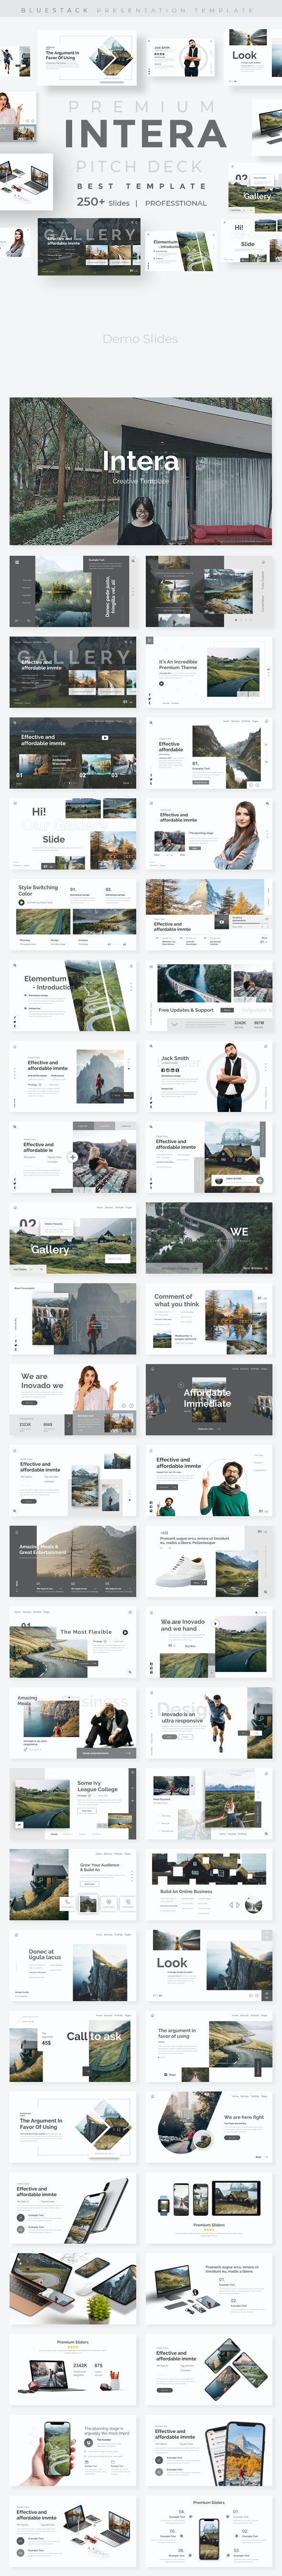 Intera Premium Powerpoint Template - Creative PowerPoint Templates